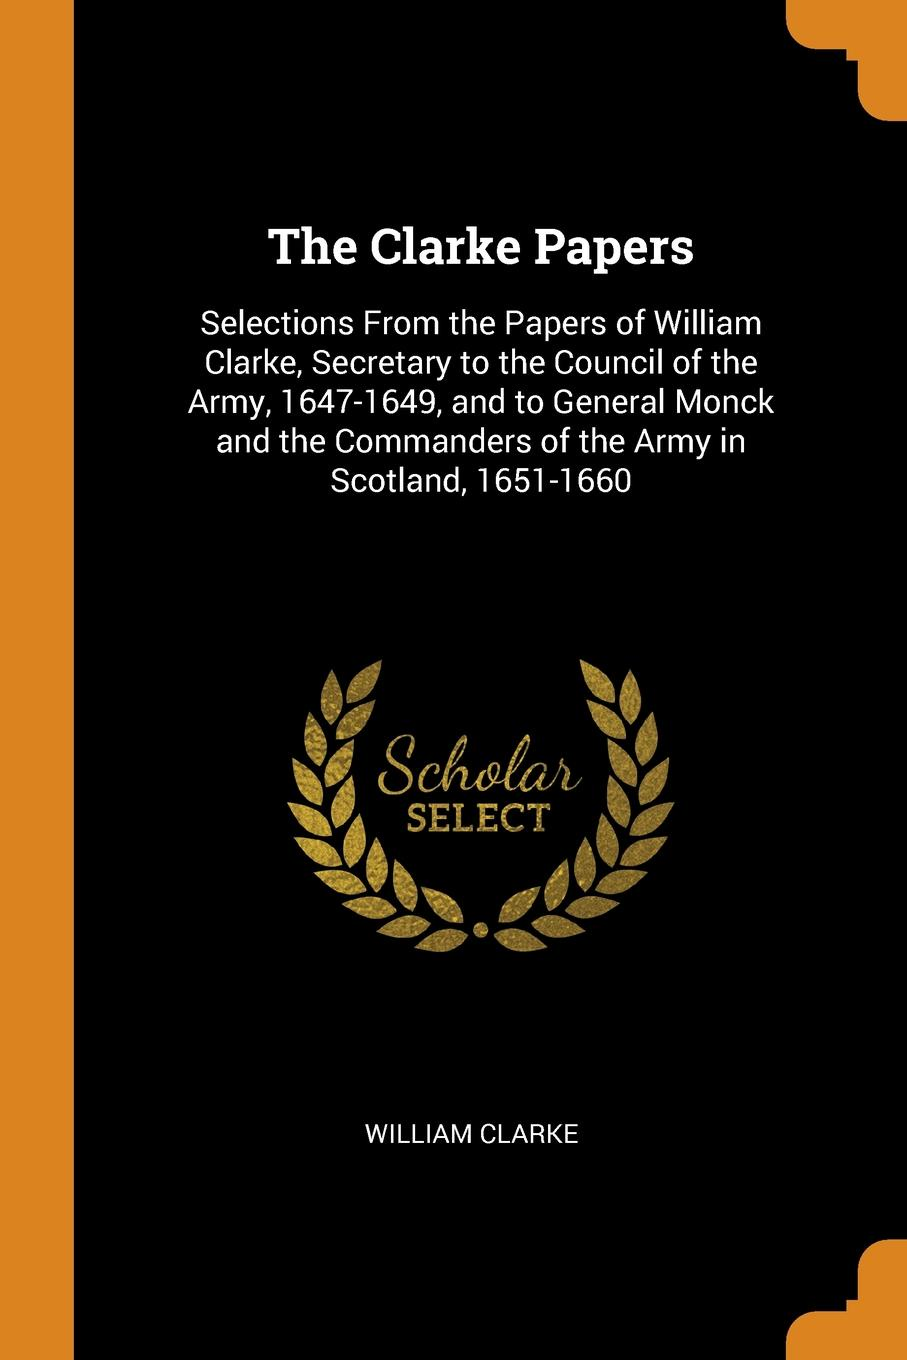 The Clarke Papers. Selections From the Papers of William Clarke, Secretary to the Council of the Army, 1647-1649, and to General Monck and the Commanders of the Army in Scotland, 1651-1660 This work has been selected by scholars as being culturally important...